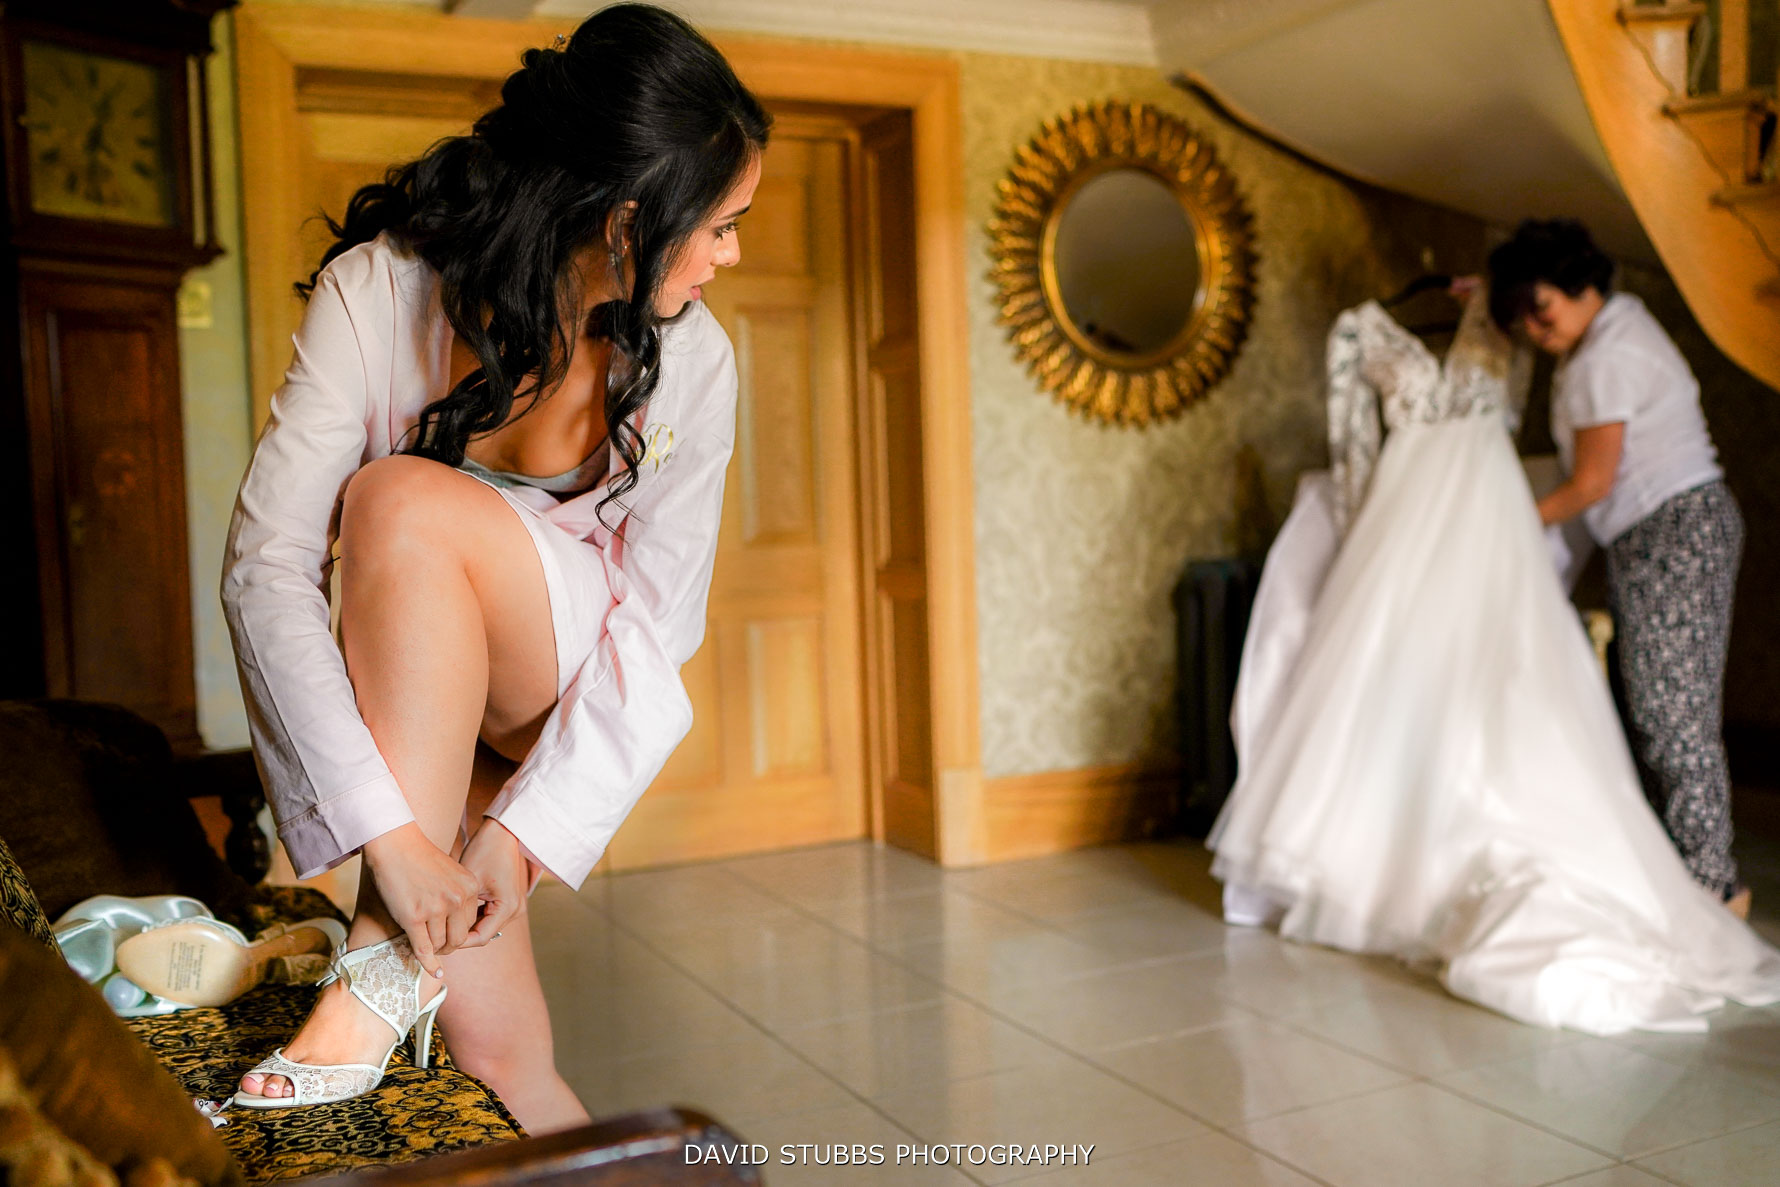 wedding shoes being put on